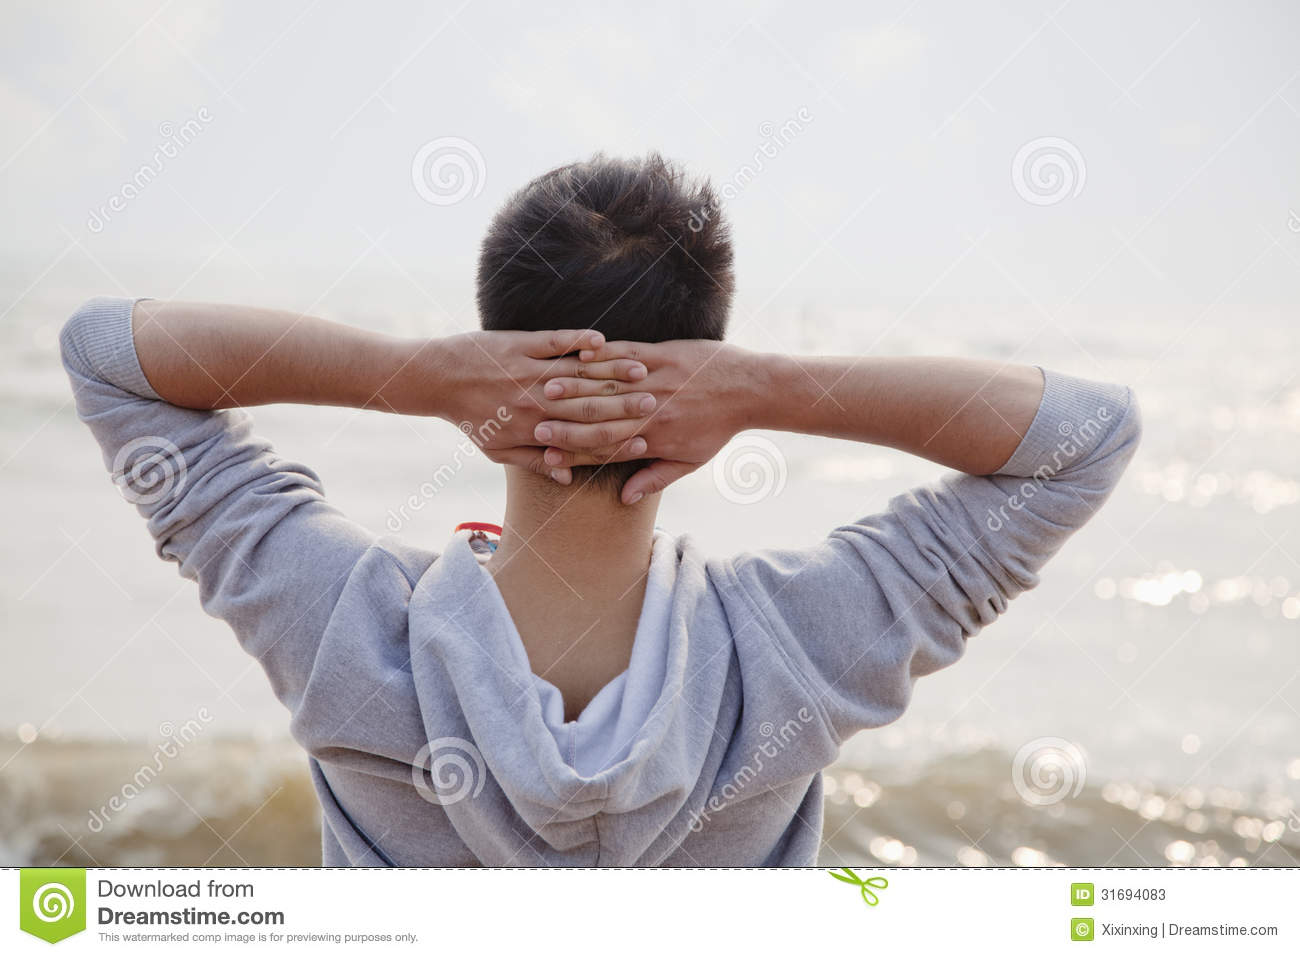 Young Man With Hands Behind Head, Looking Out To Sea Stock Photos Image 31694083